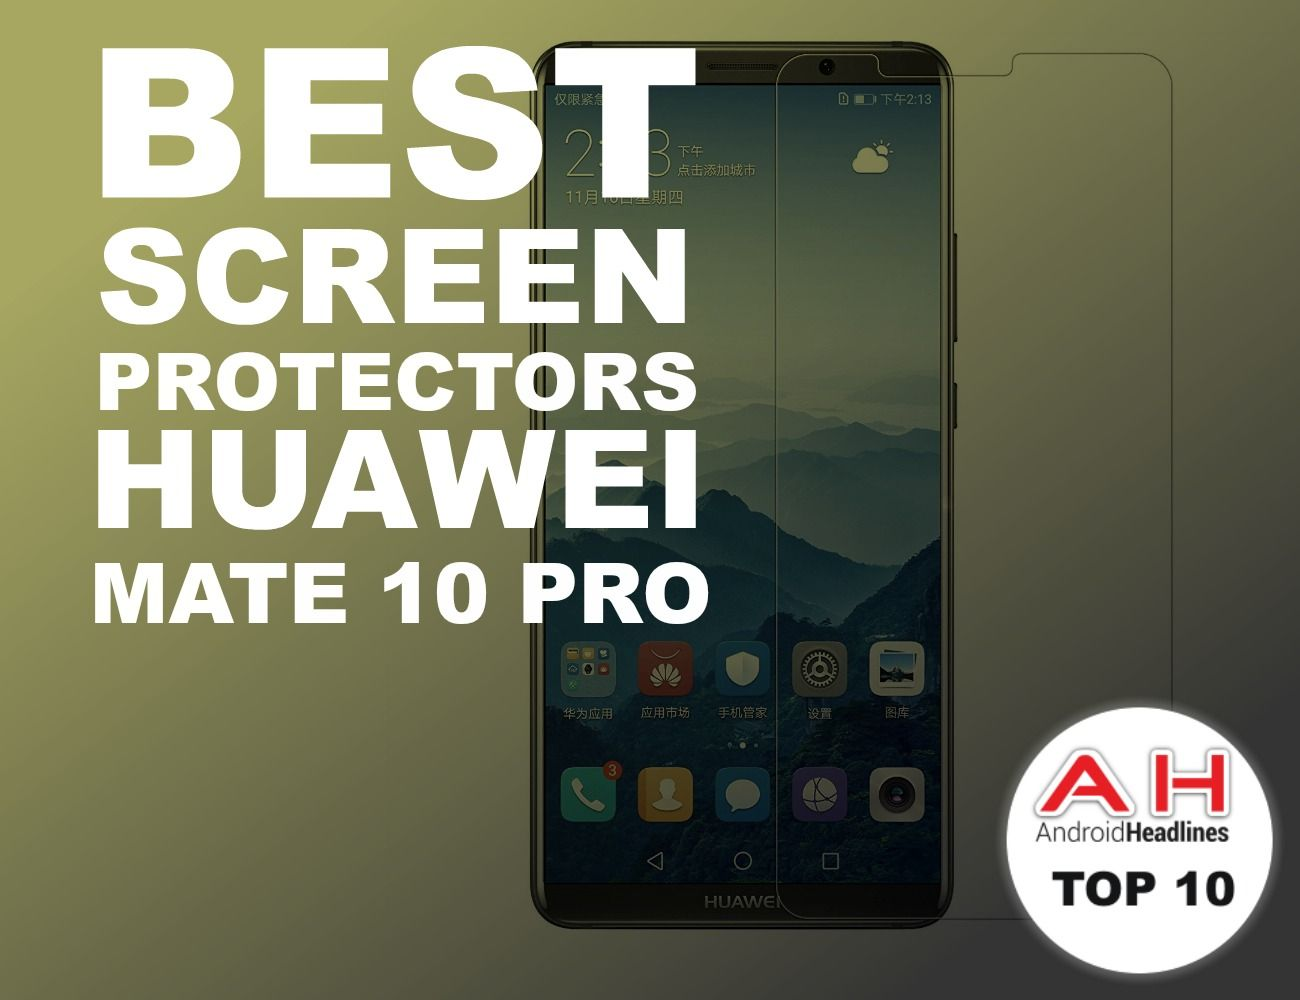 Best Screen Protectors For Huawei Mate 10 Pro February 2018 Best Screen Protector Huawei Mate How To Look Better